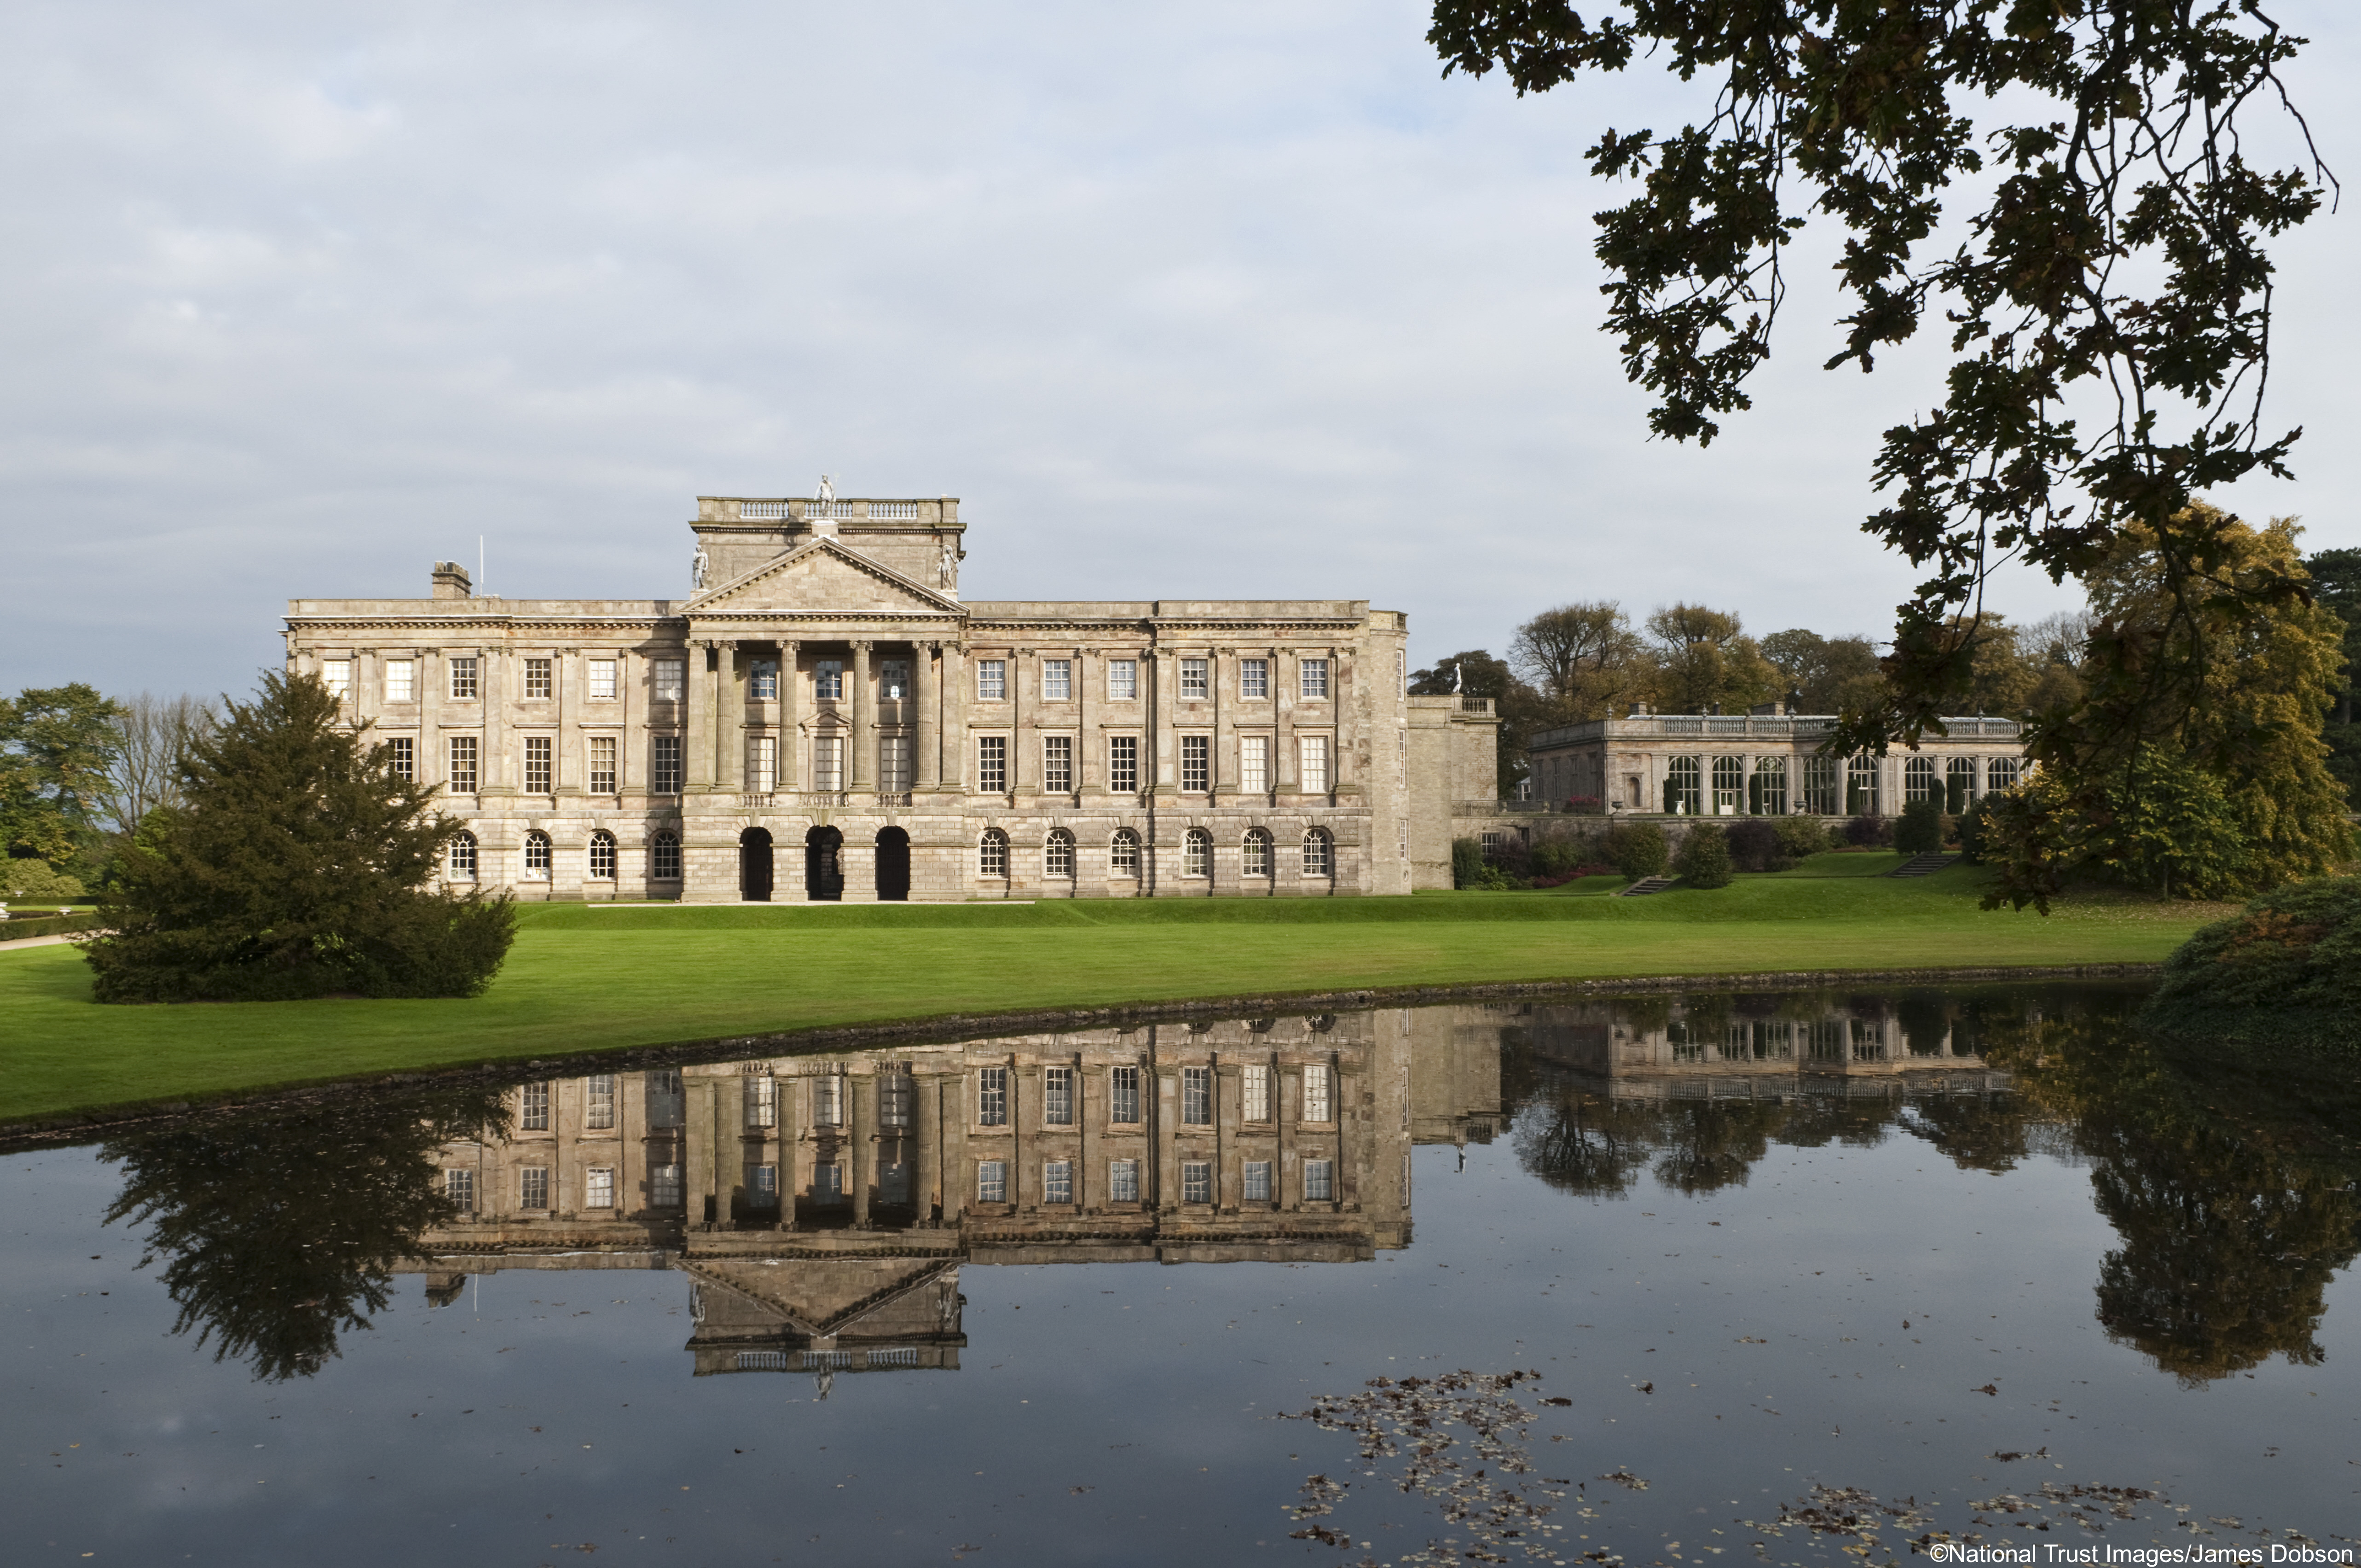 The south front of Lyme Park, Cheshire, seen across the lake, in autumn. The house was originally Elizabethan but was transformed in the Italianate style by architect Giacomo Leoni in the early eighteenth century.